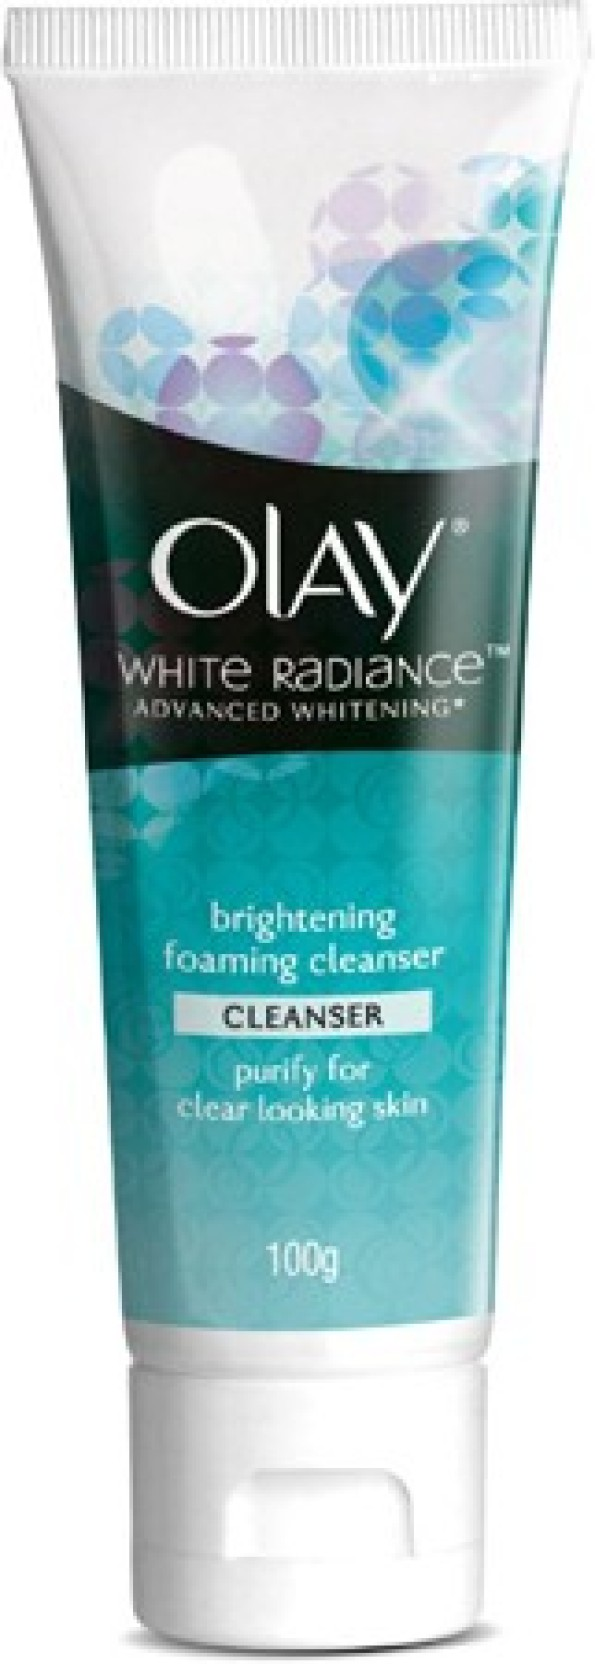 Olay White Radiance Advanced Whitening Brightening Foaming Cleanser Face Wash. Share